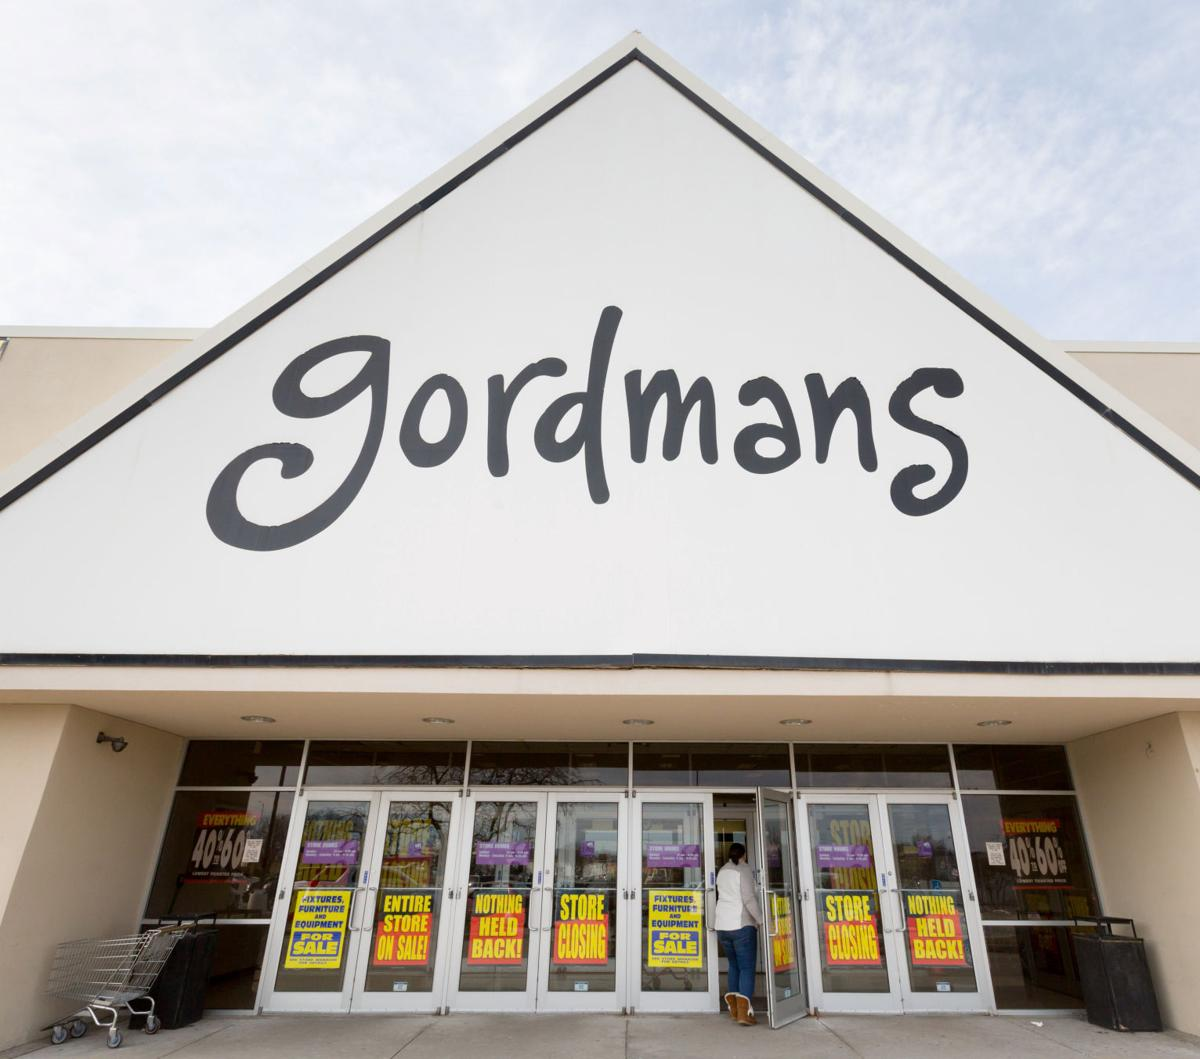 cb0f13f09de Lake Manawa store will be metro area s only Gordmans after four others are  closed